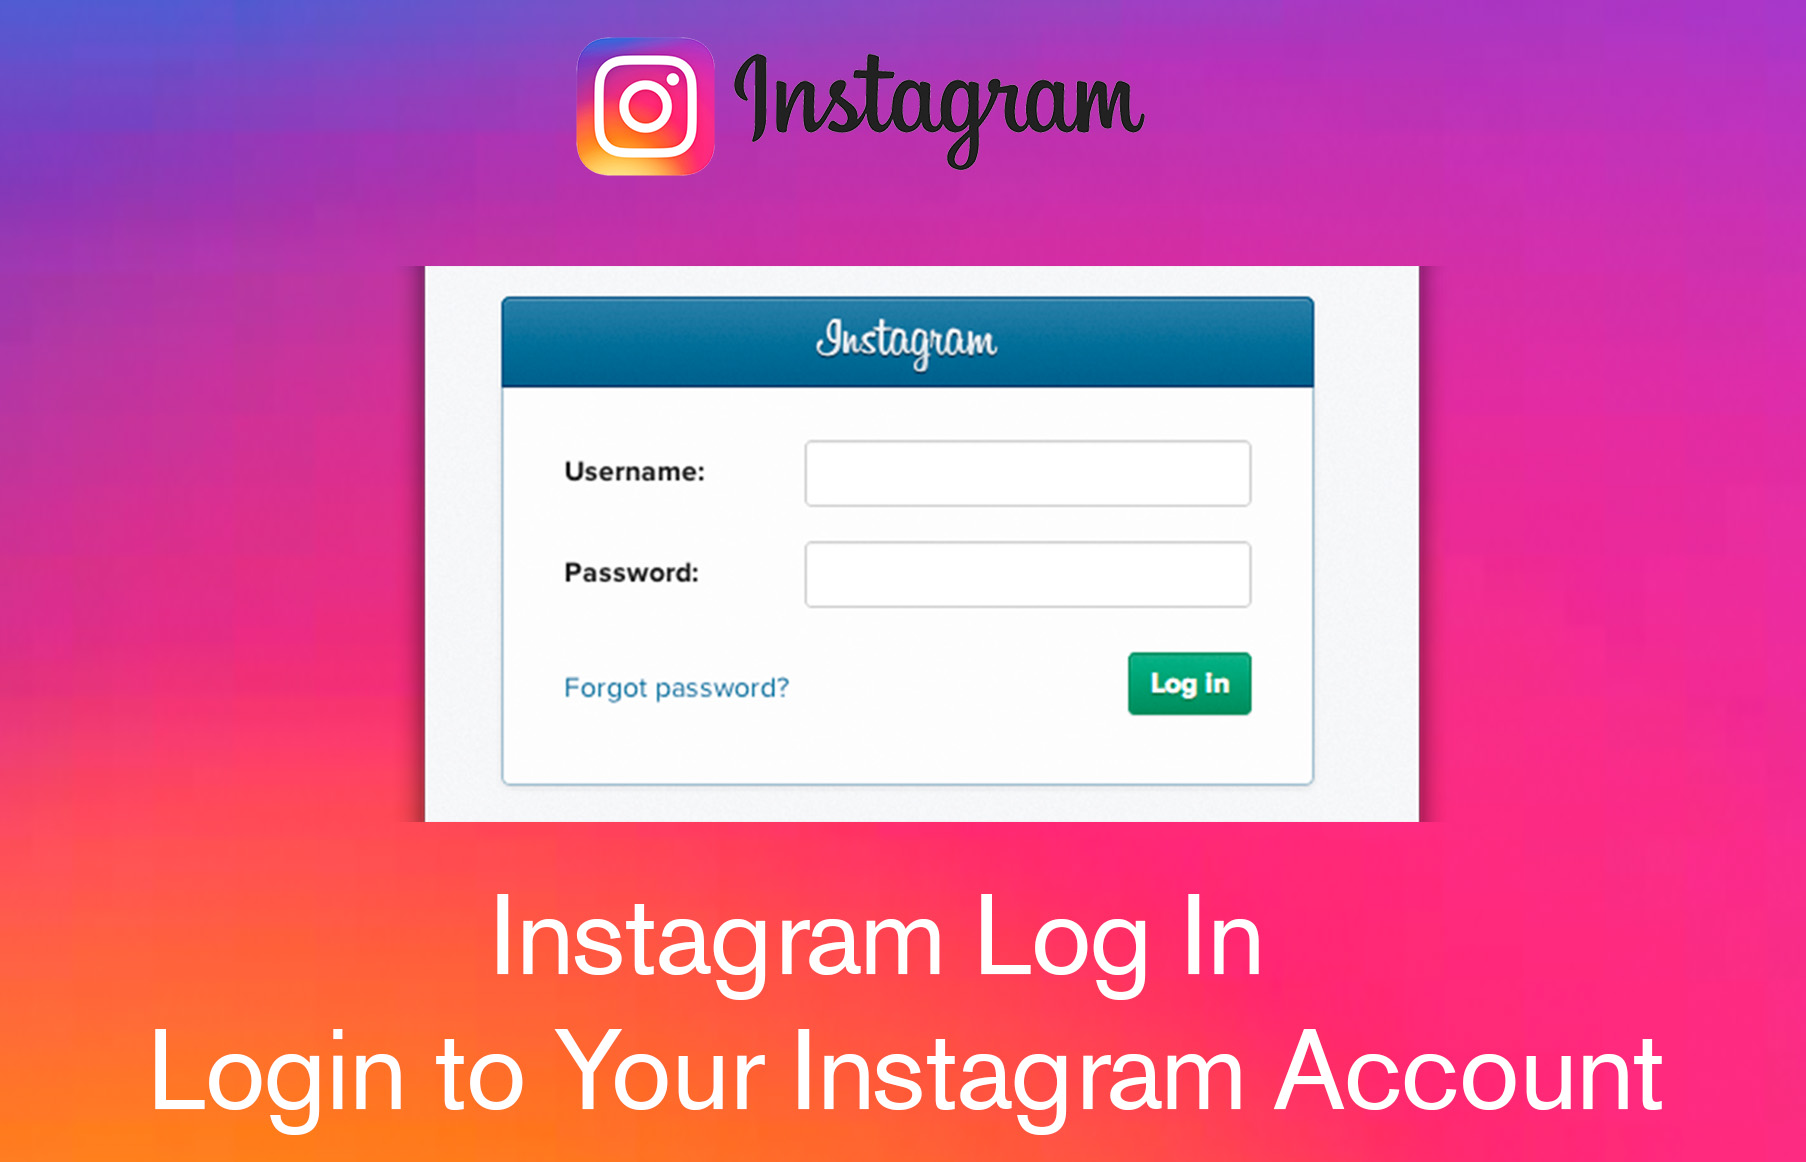 Instagram Log In - Login to Your Instagram Account